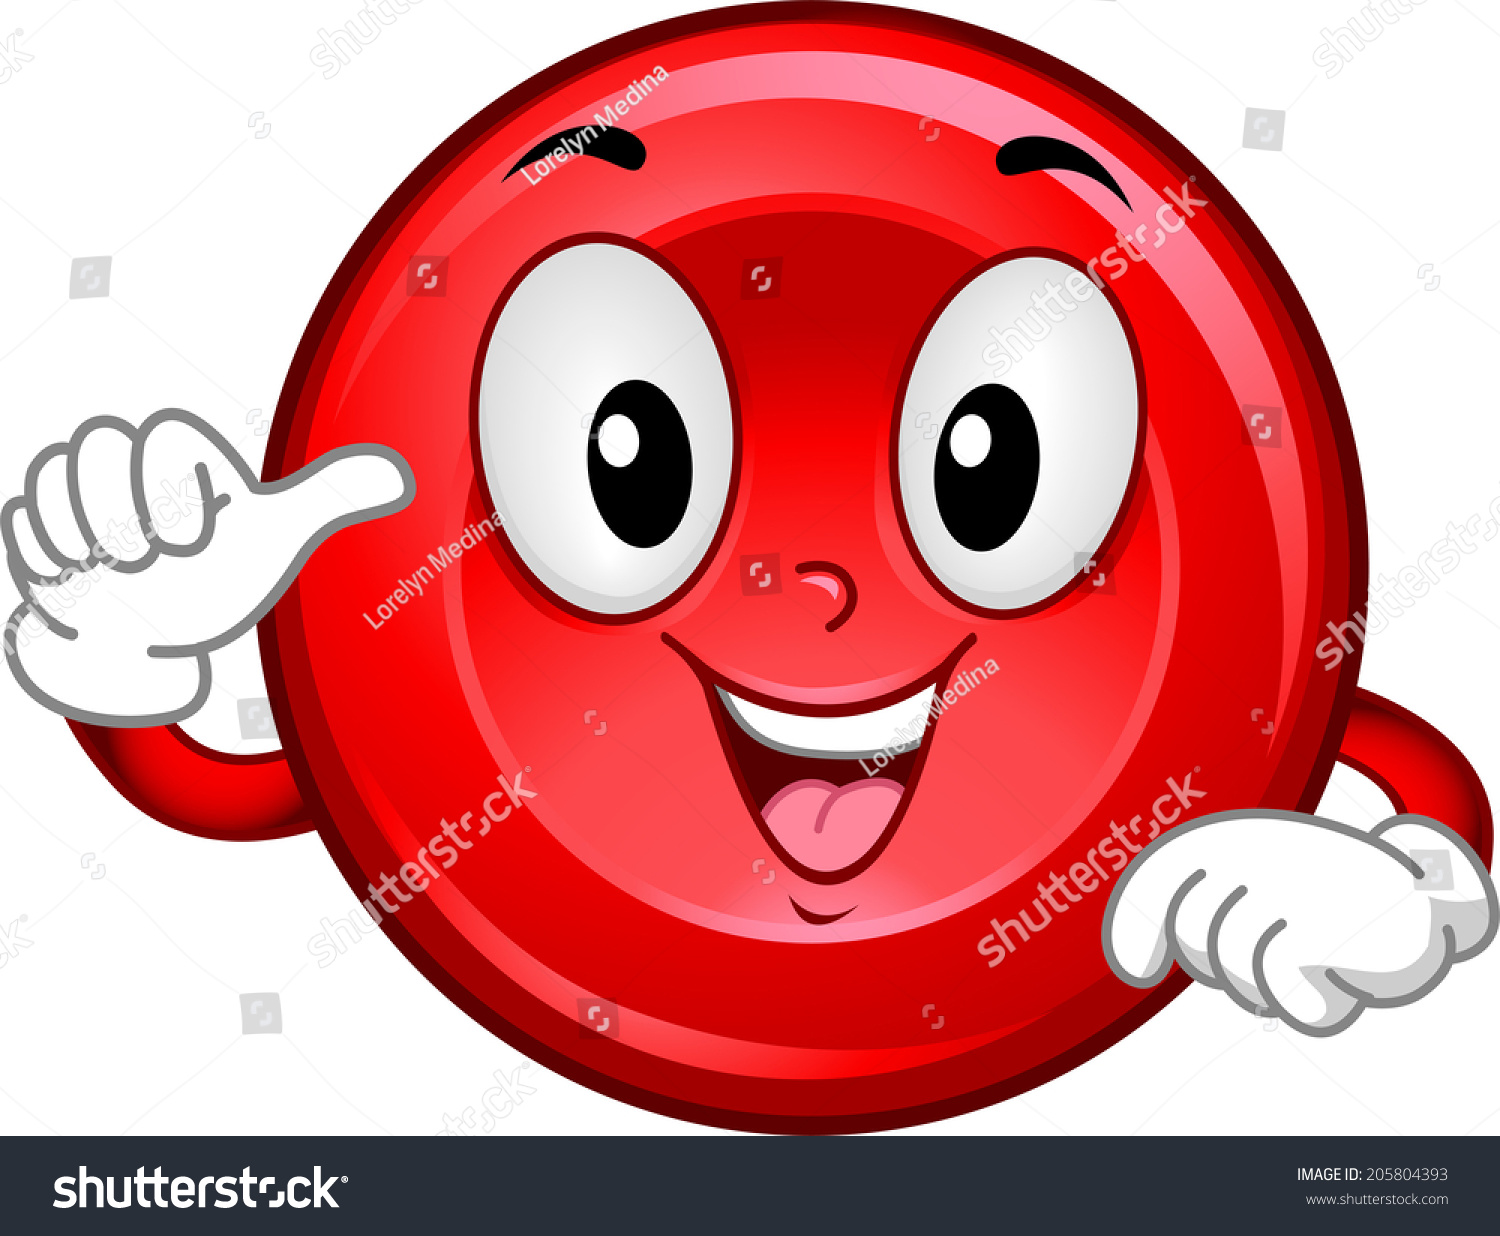 Mascot Illustration Featuring Smiling Red Blood Stock ...